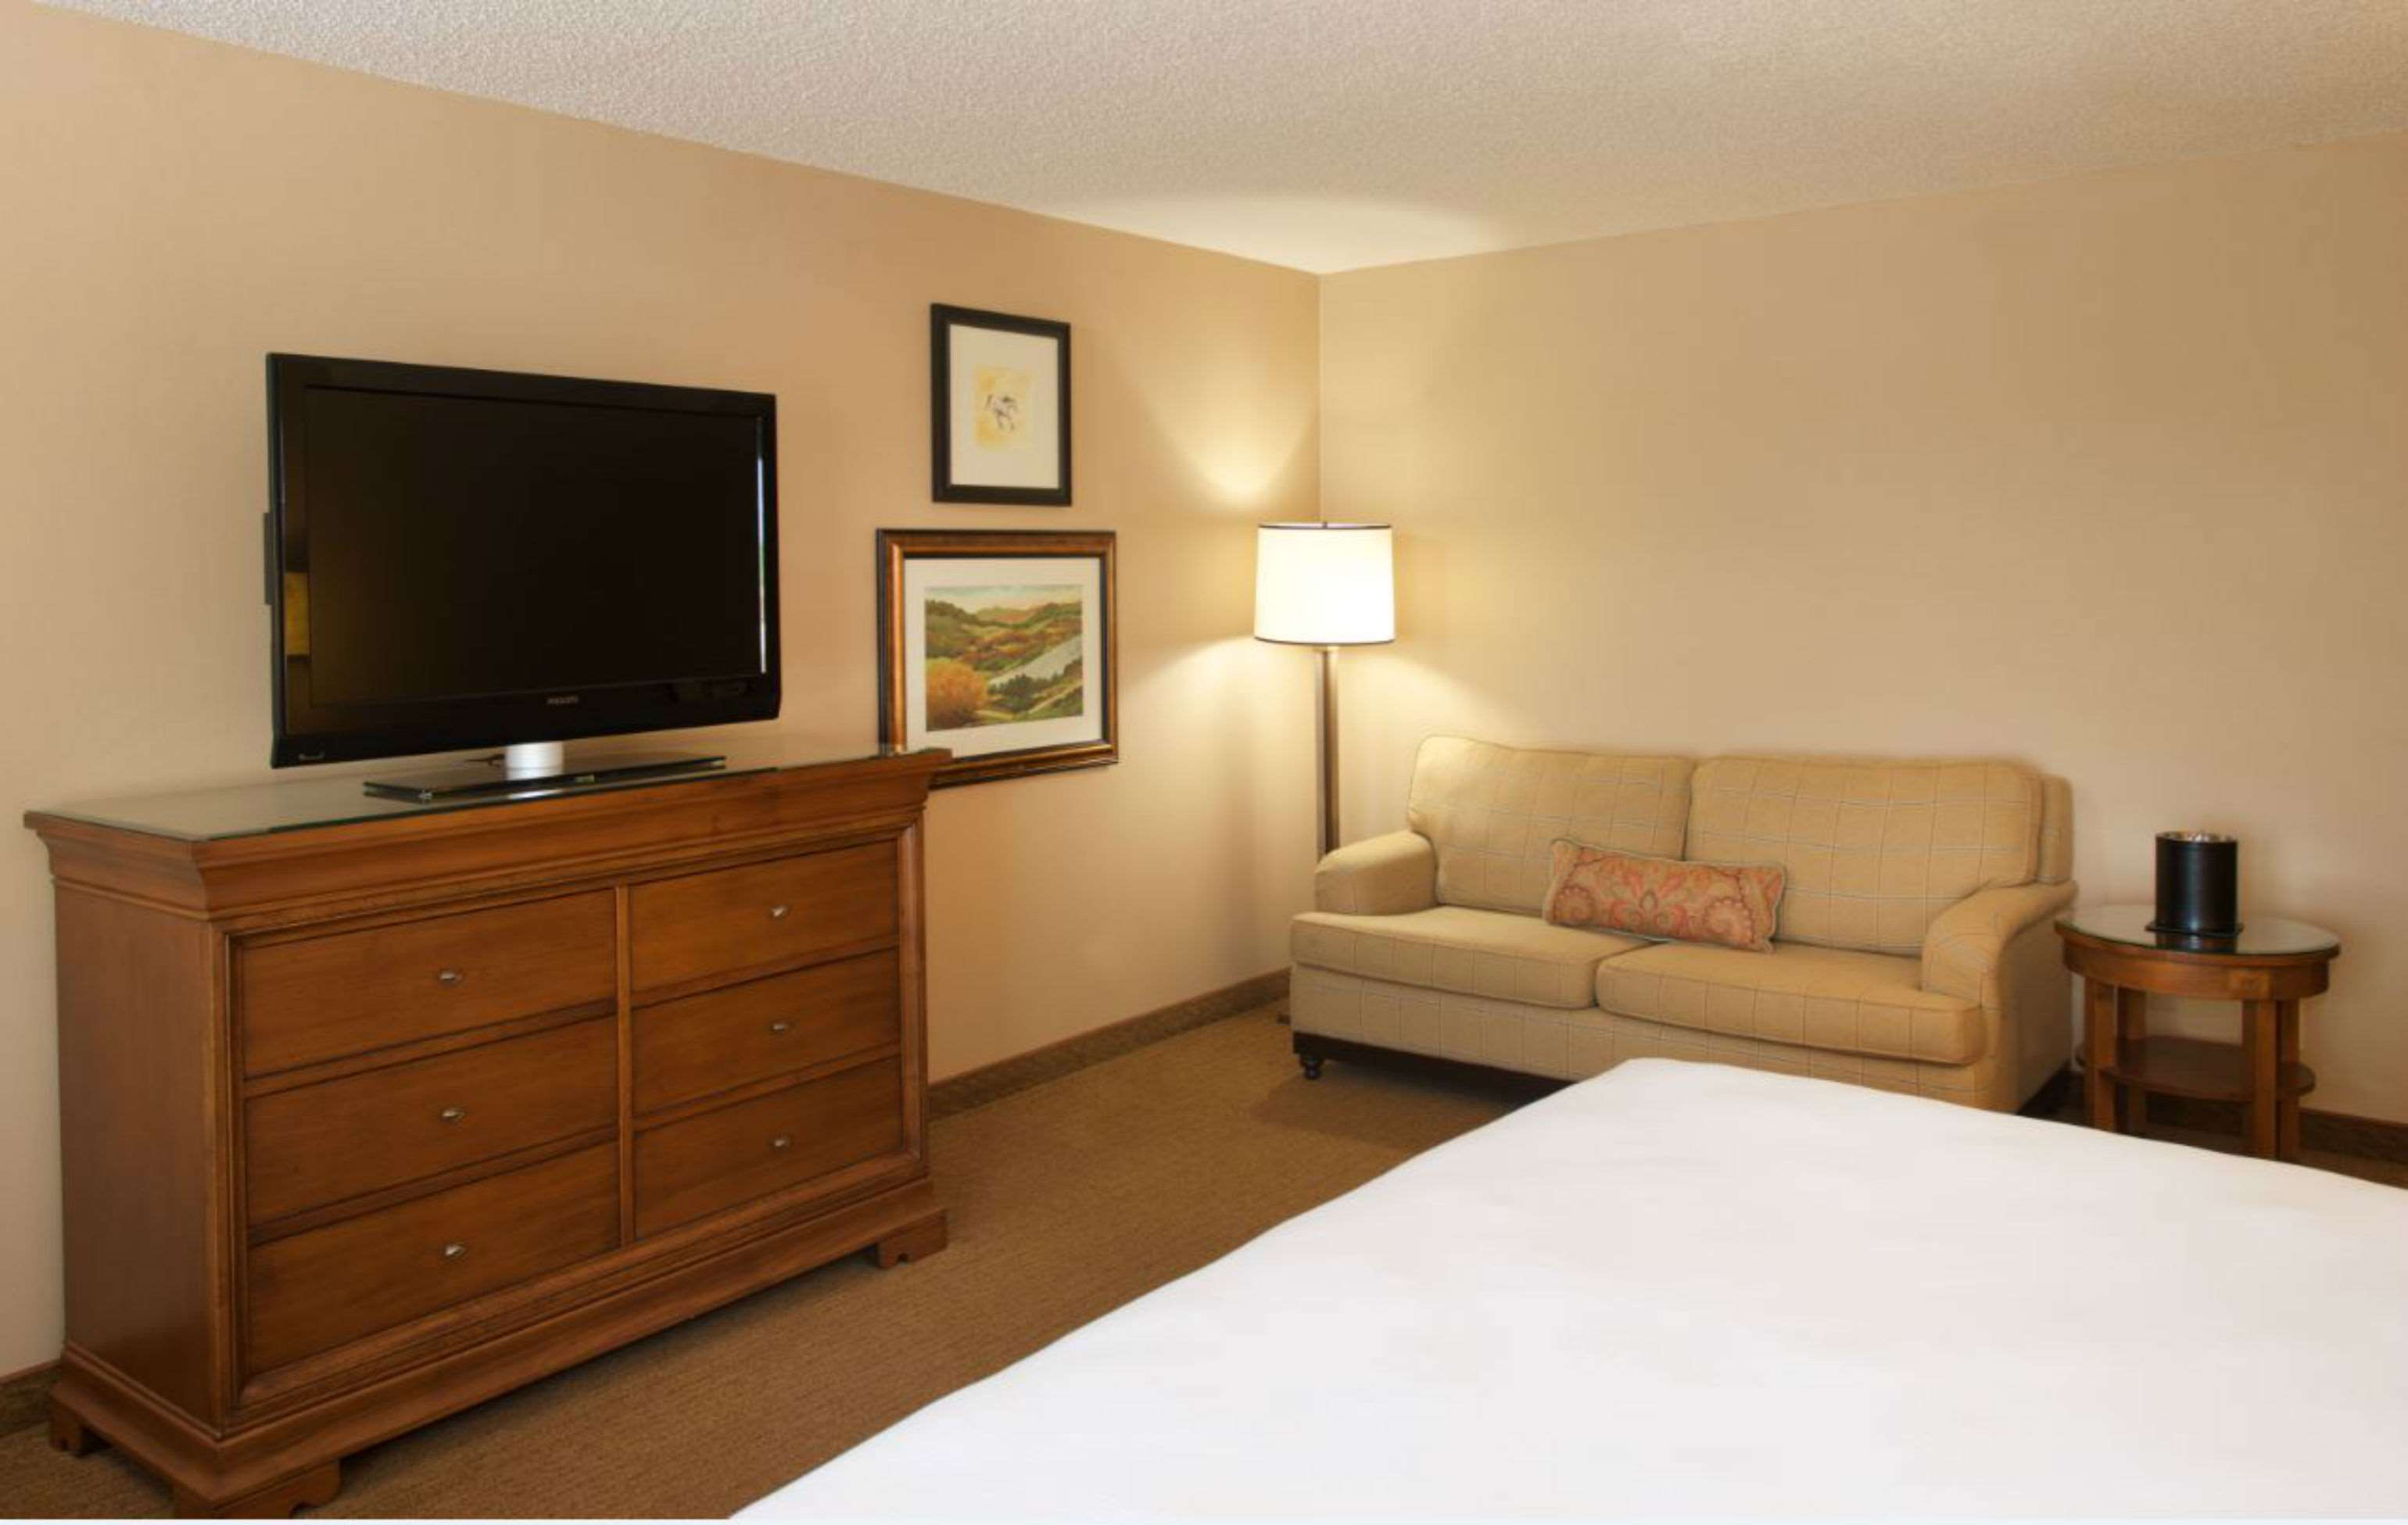 DoubleTree by Hilton Hotel Bloomington - Minneapolis South image 6